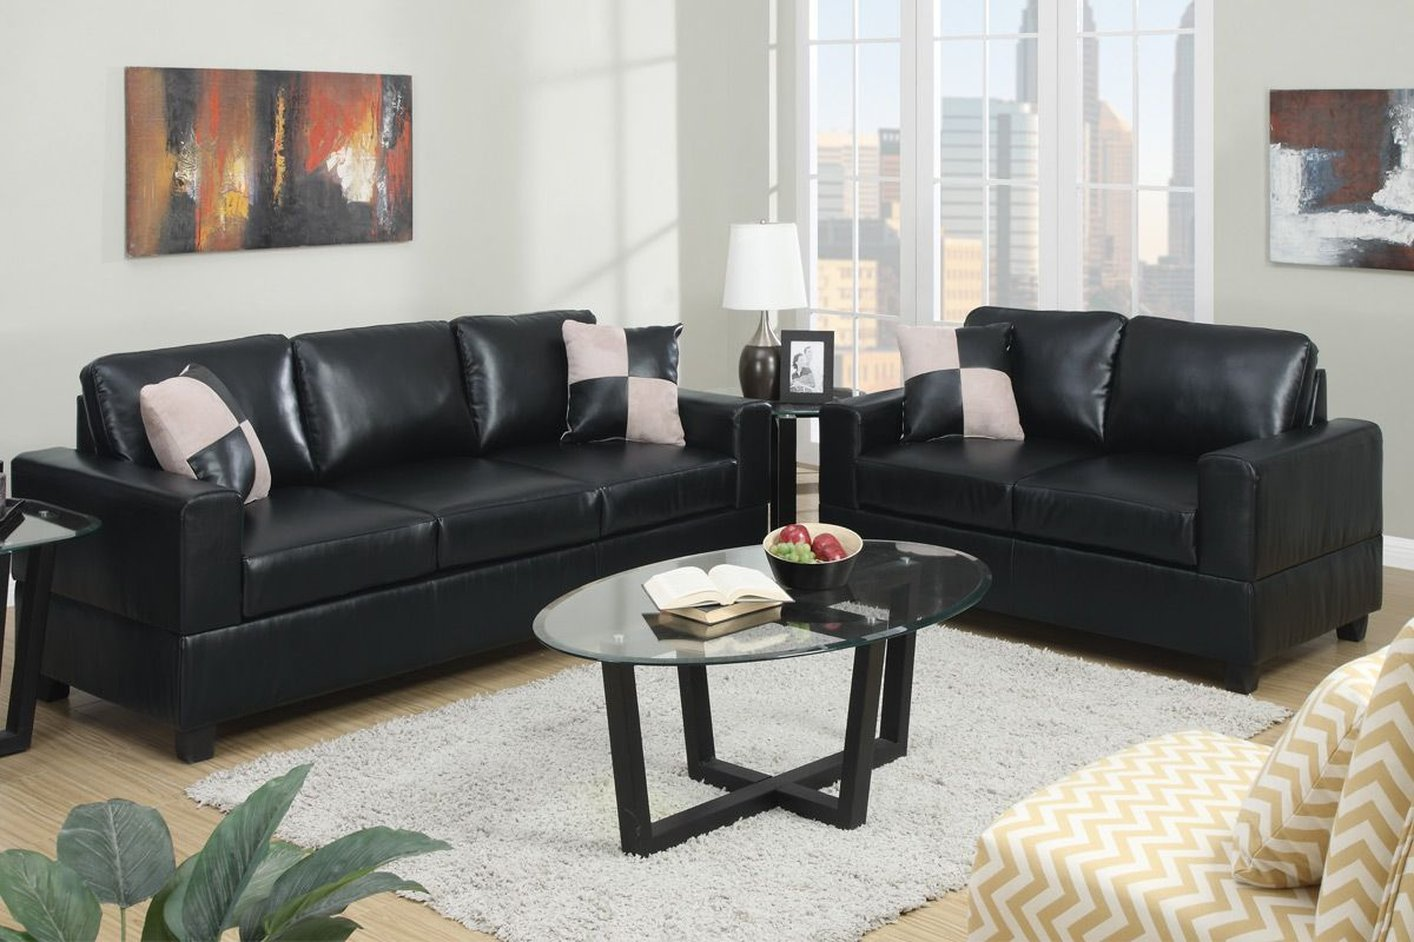 Poundex tesse f7598 black leather sofa and loveseat set for Leather sofa and loveseat set